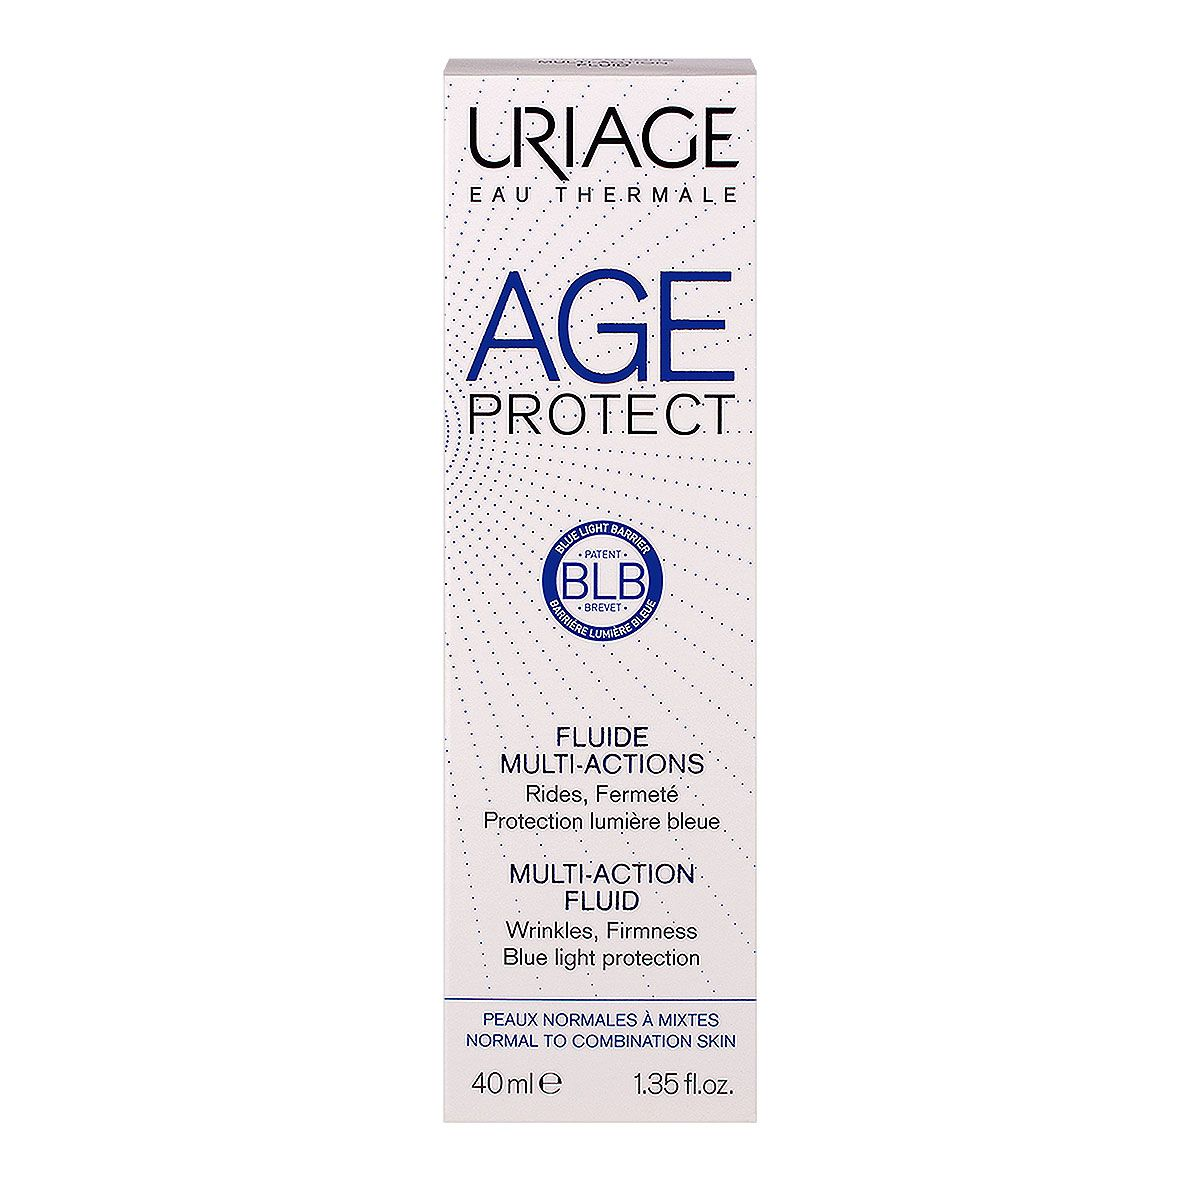 Age Protect fluide multi-actions 40ml